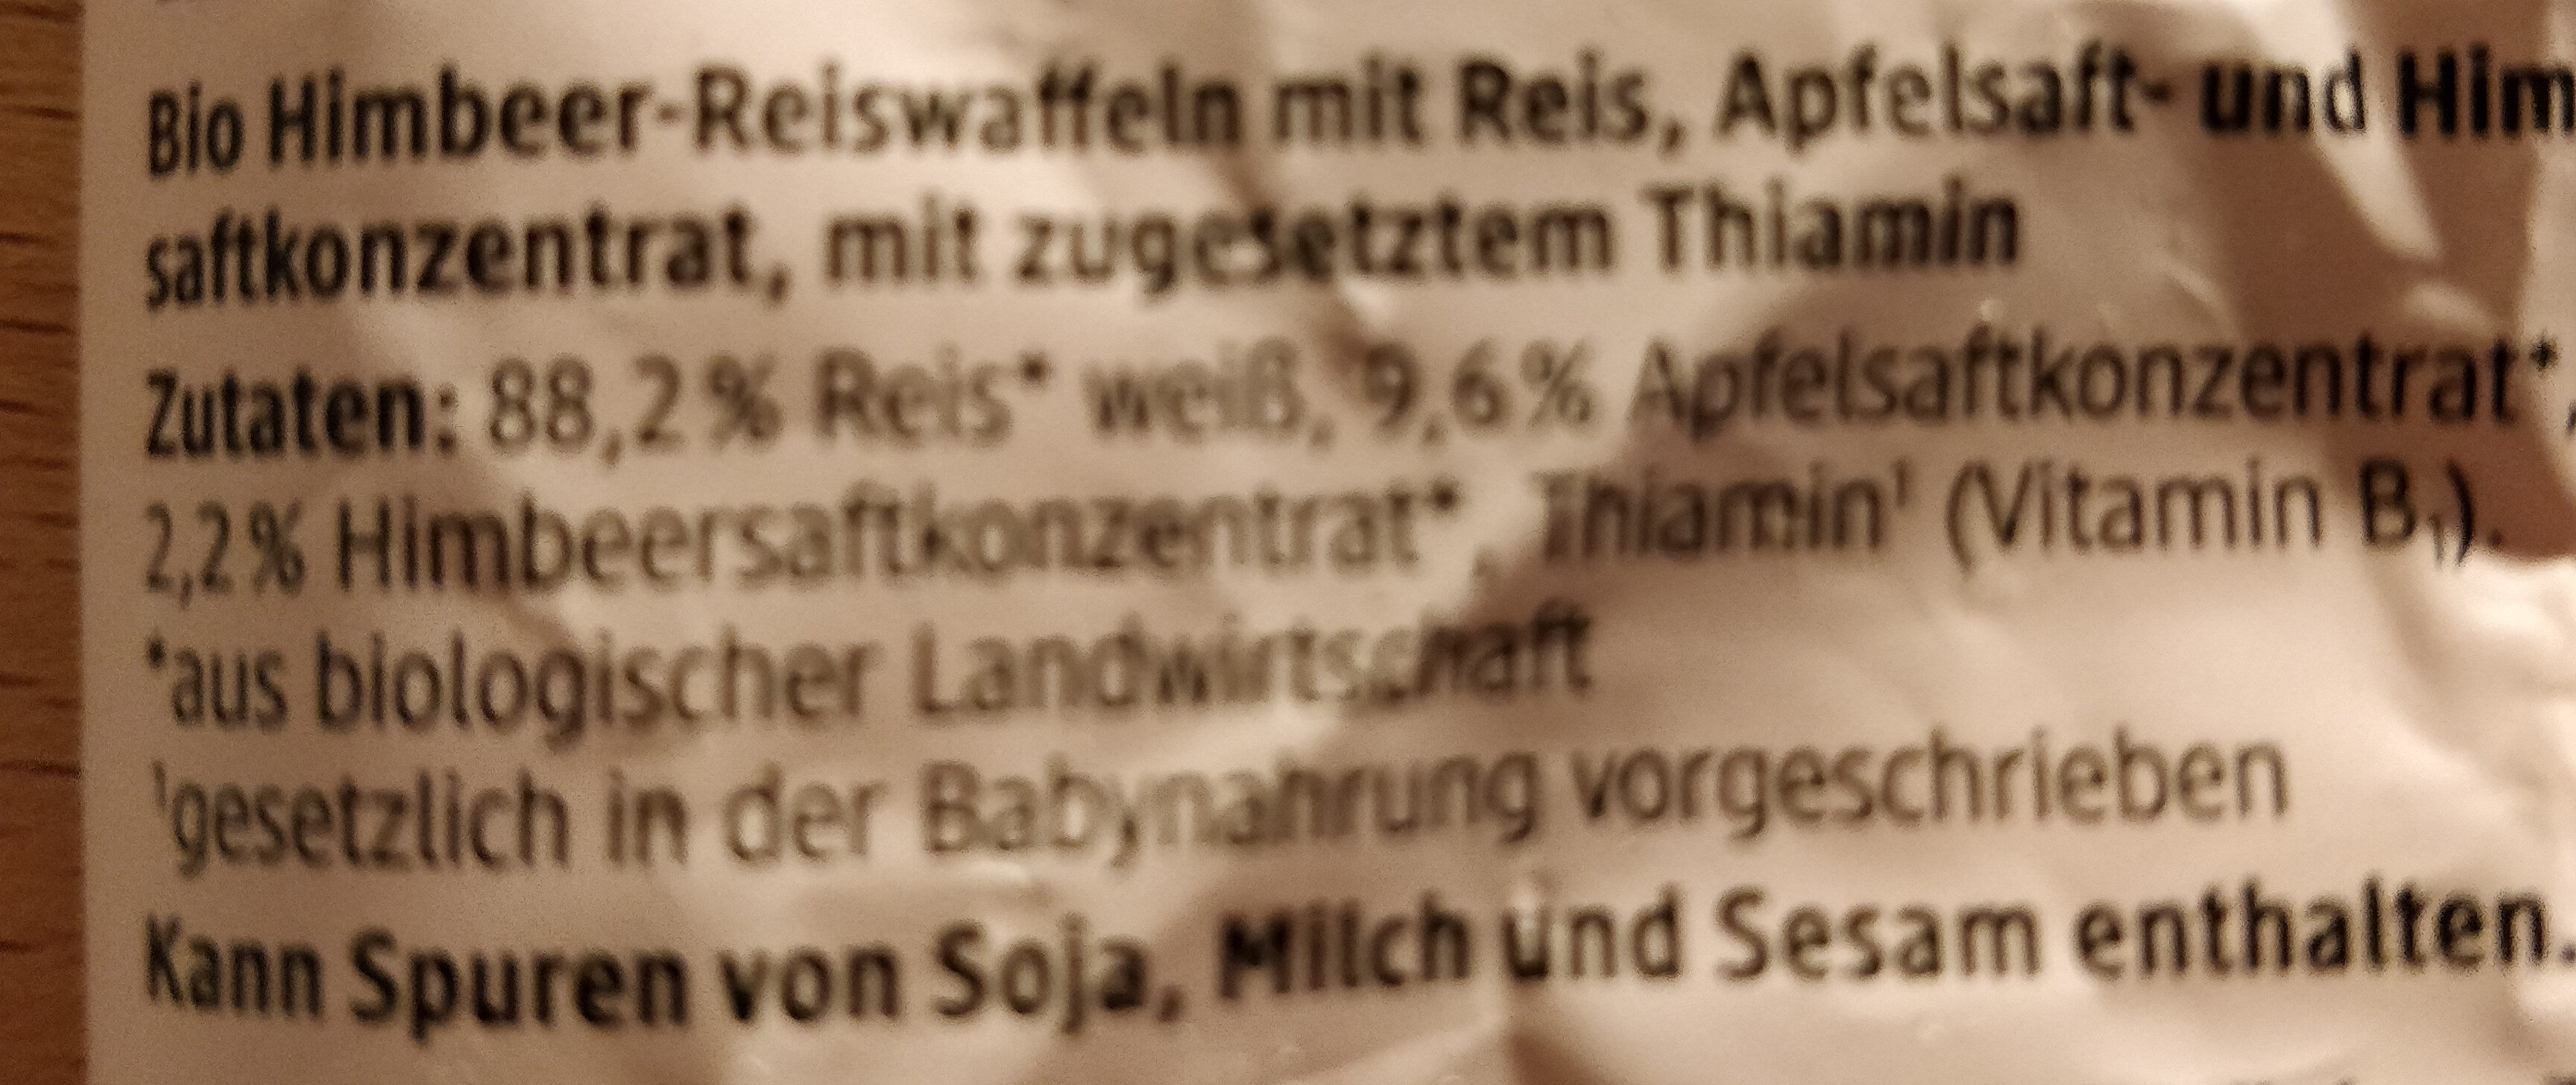 Himbeer Reiswaffeln - Ingredients - de